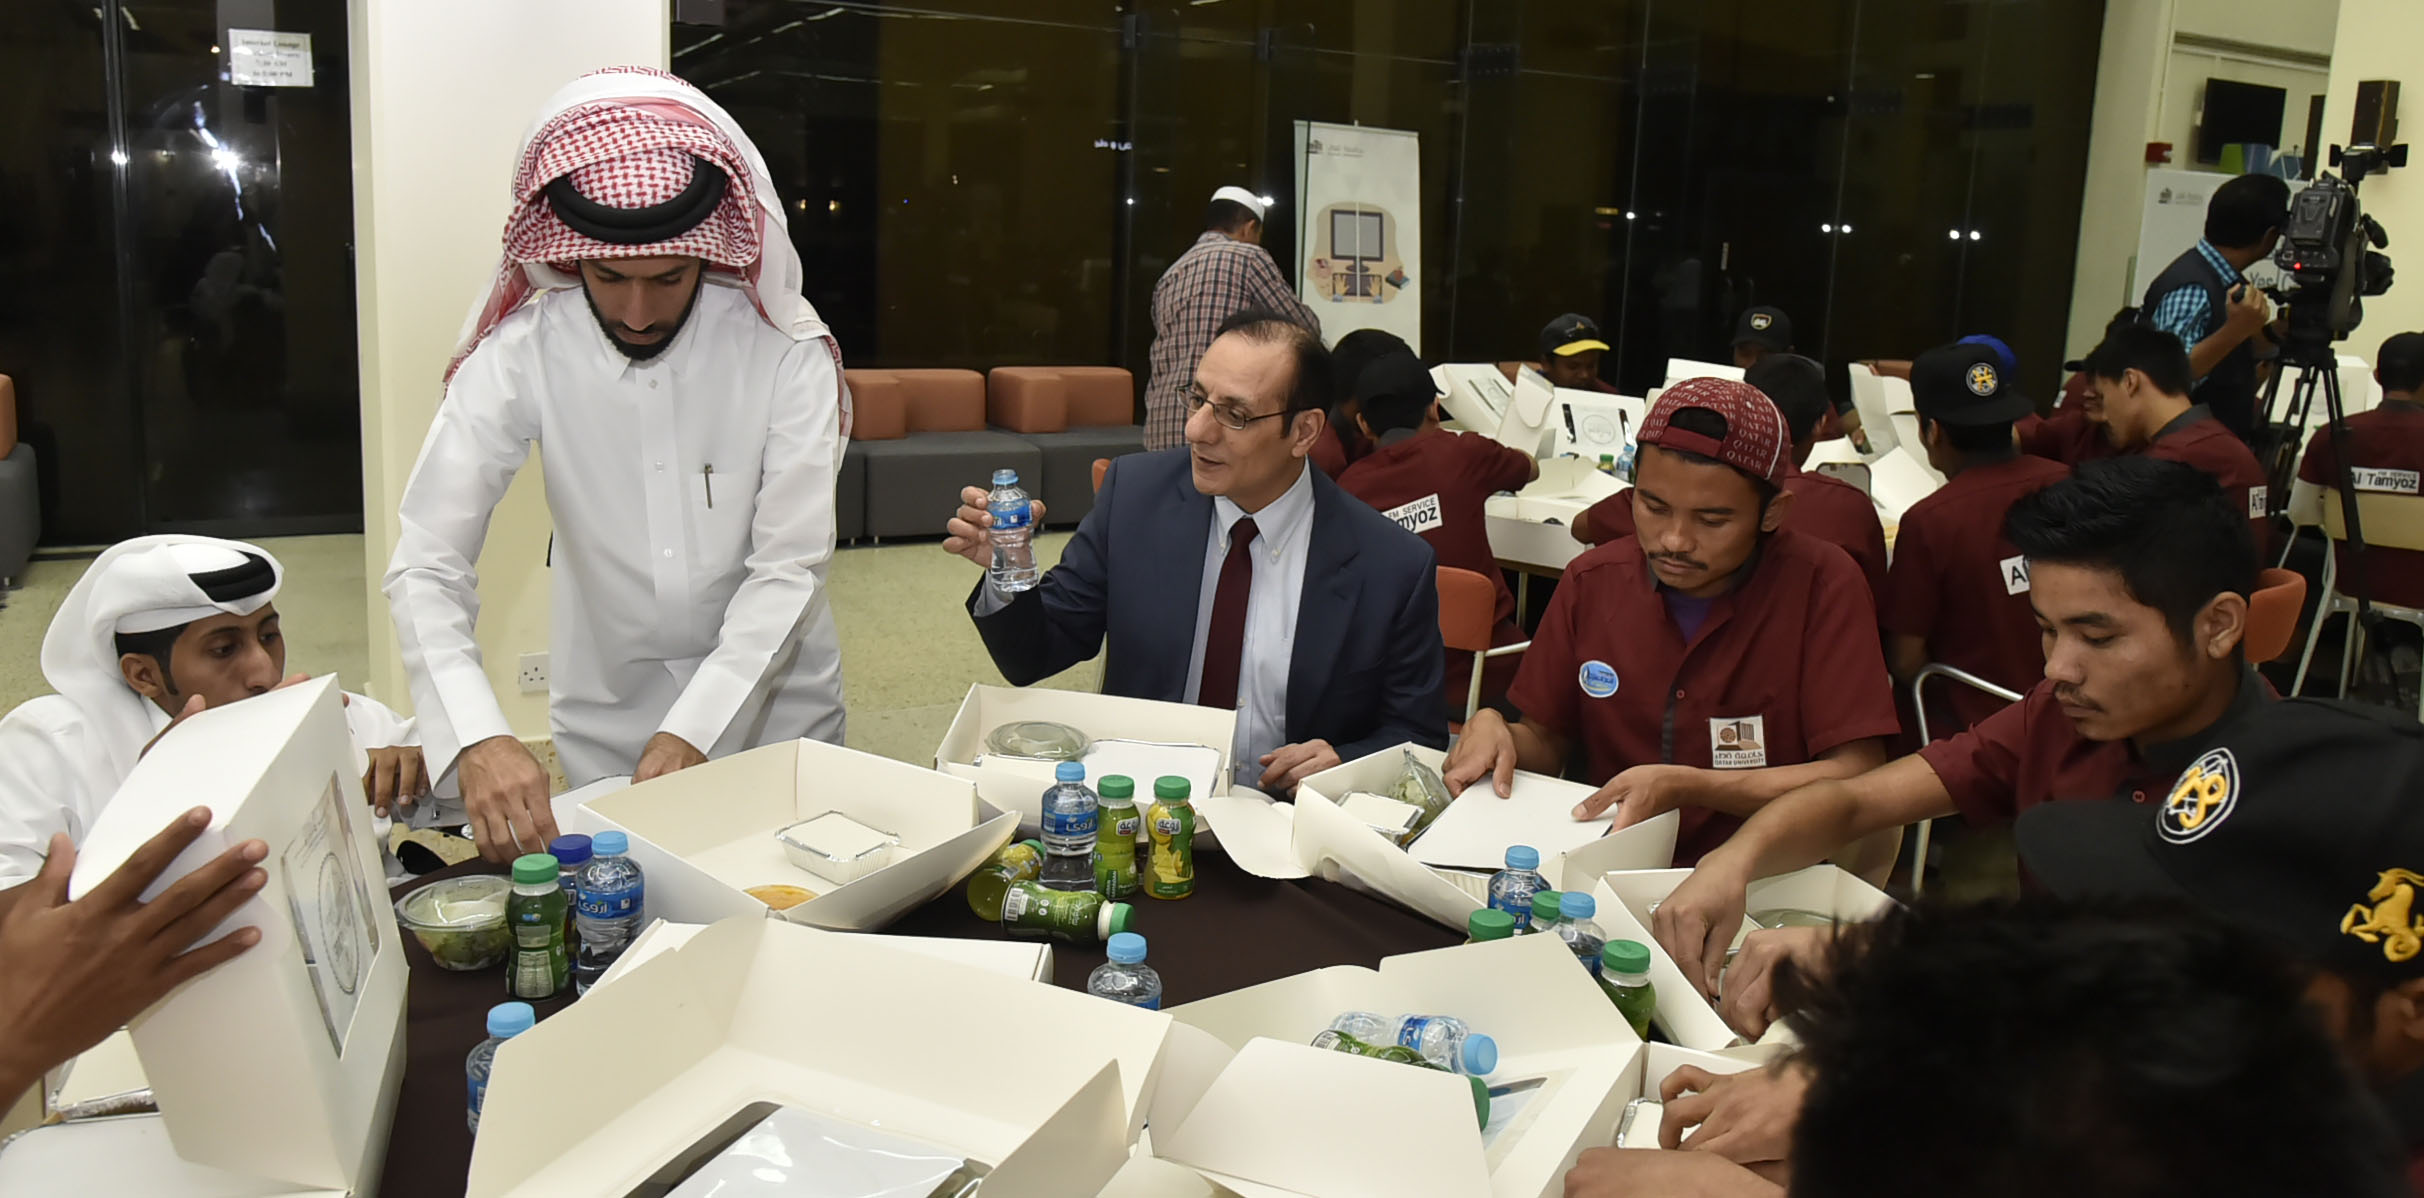 Photo of special needs students and special needs center staff eating Iftar with cleaners in Qatar University